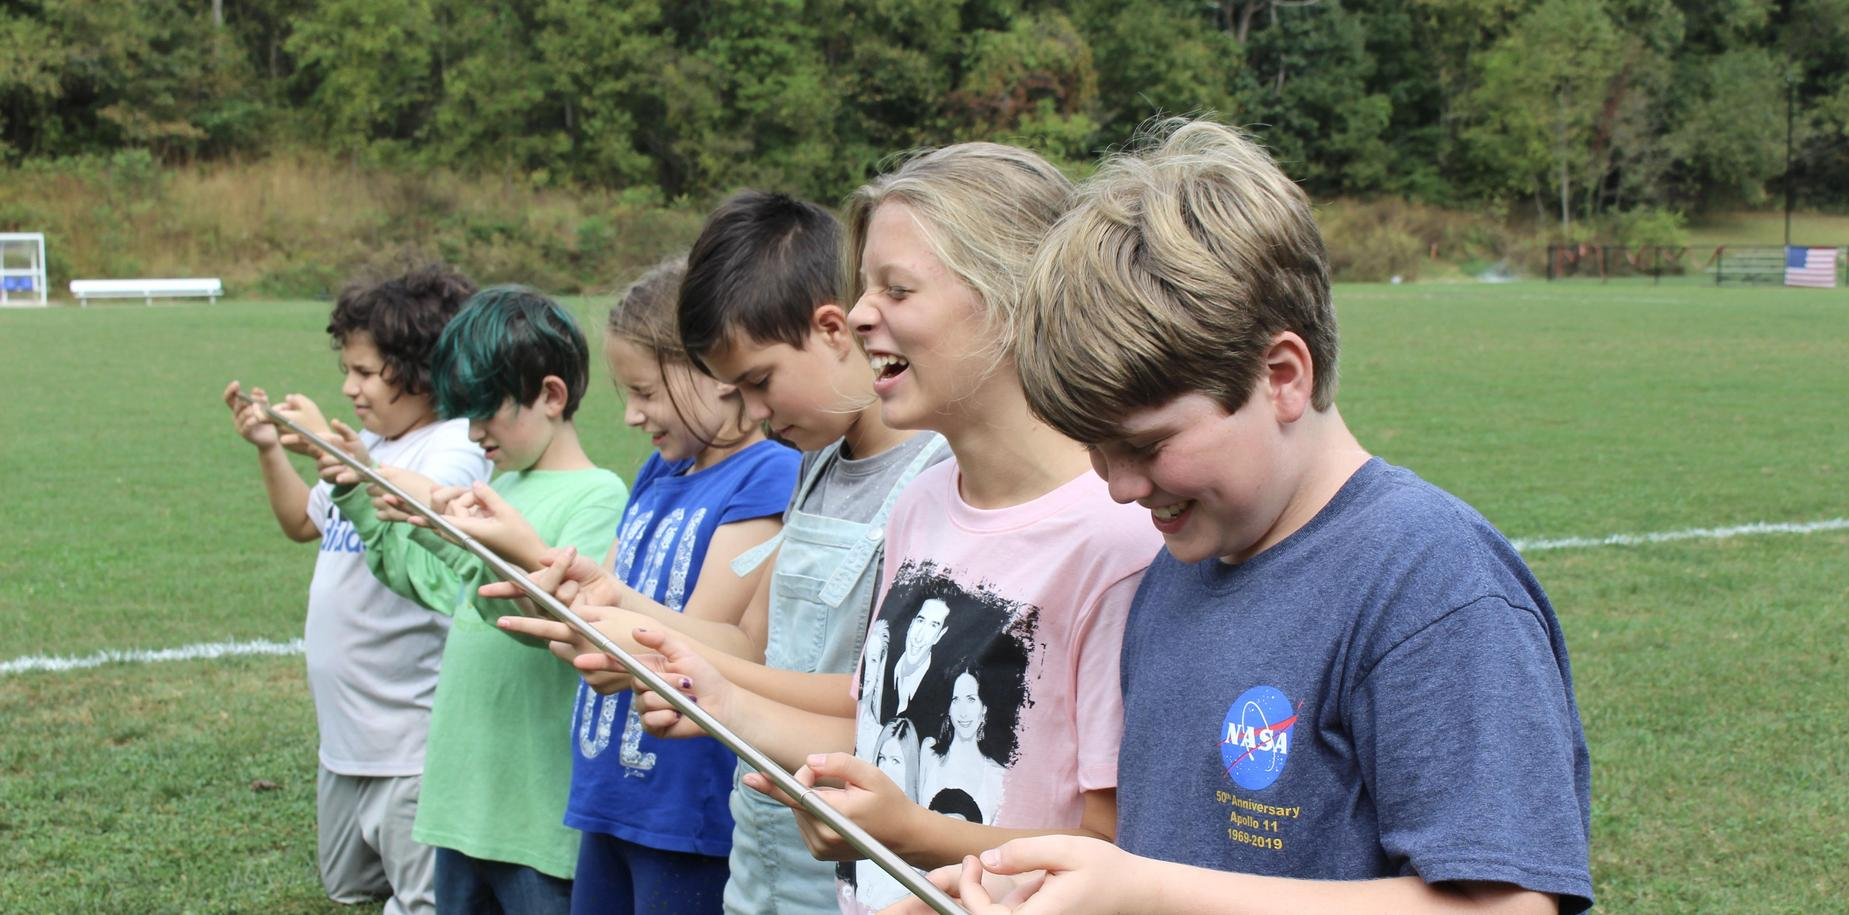 Students stand in a row and balance a rod on their hands, eyes closed and laughing.